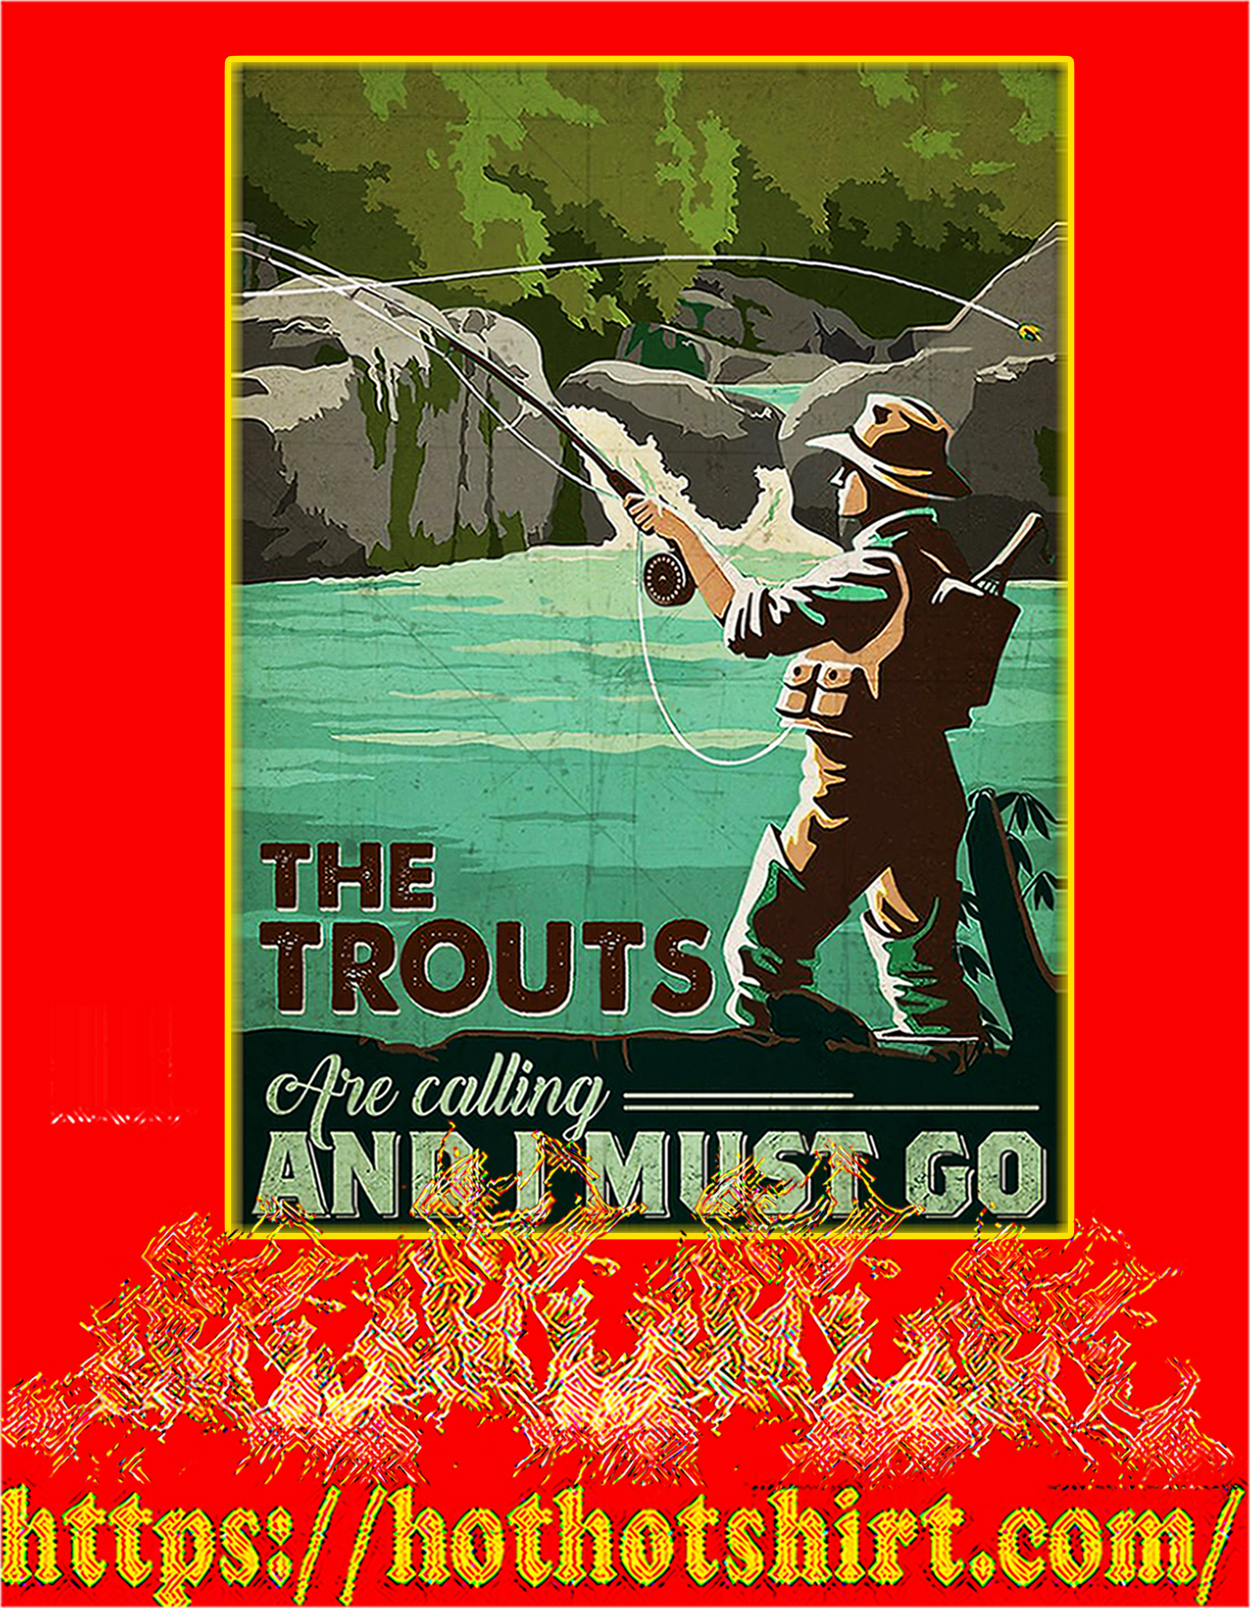 The trouts are calling and I must go poster - A3